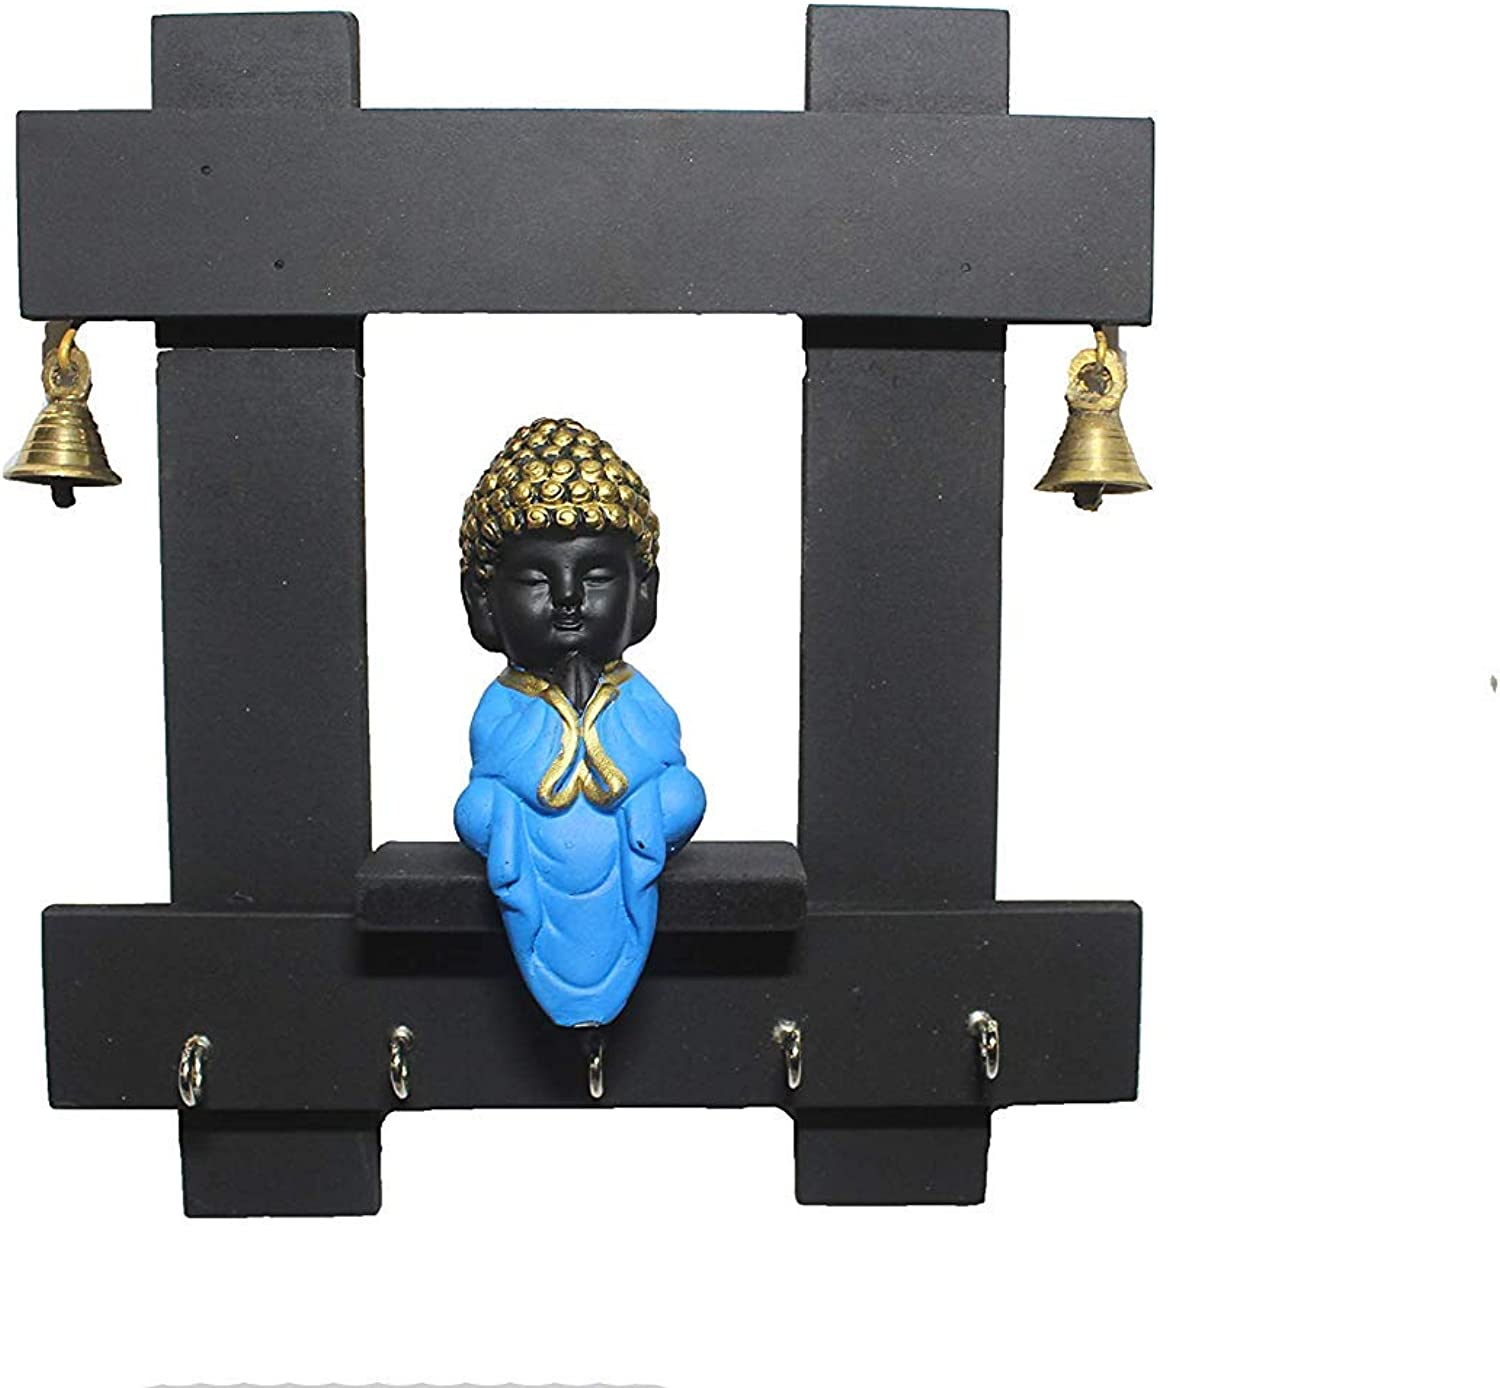 Giant Roots Wooden Buddha Key Holder for Home & Decor